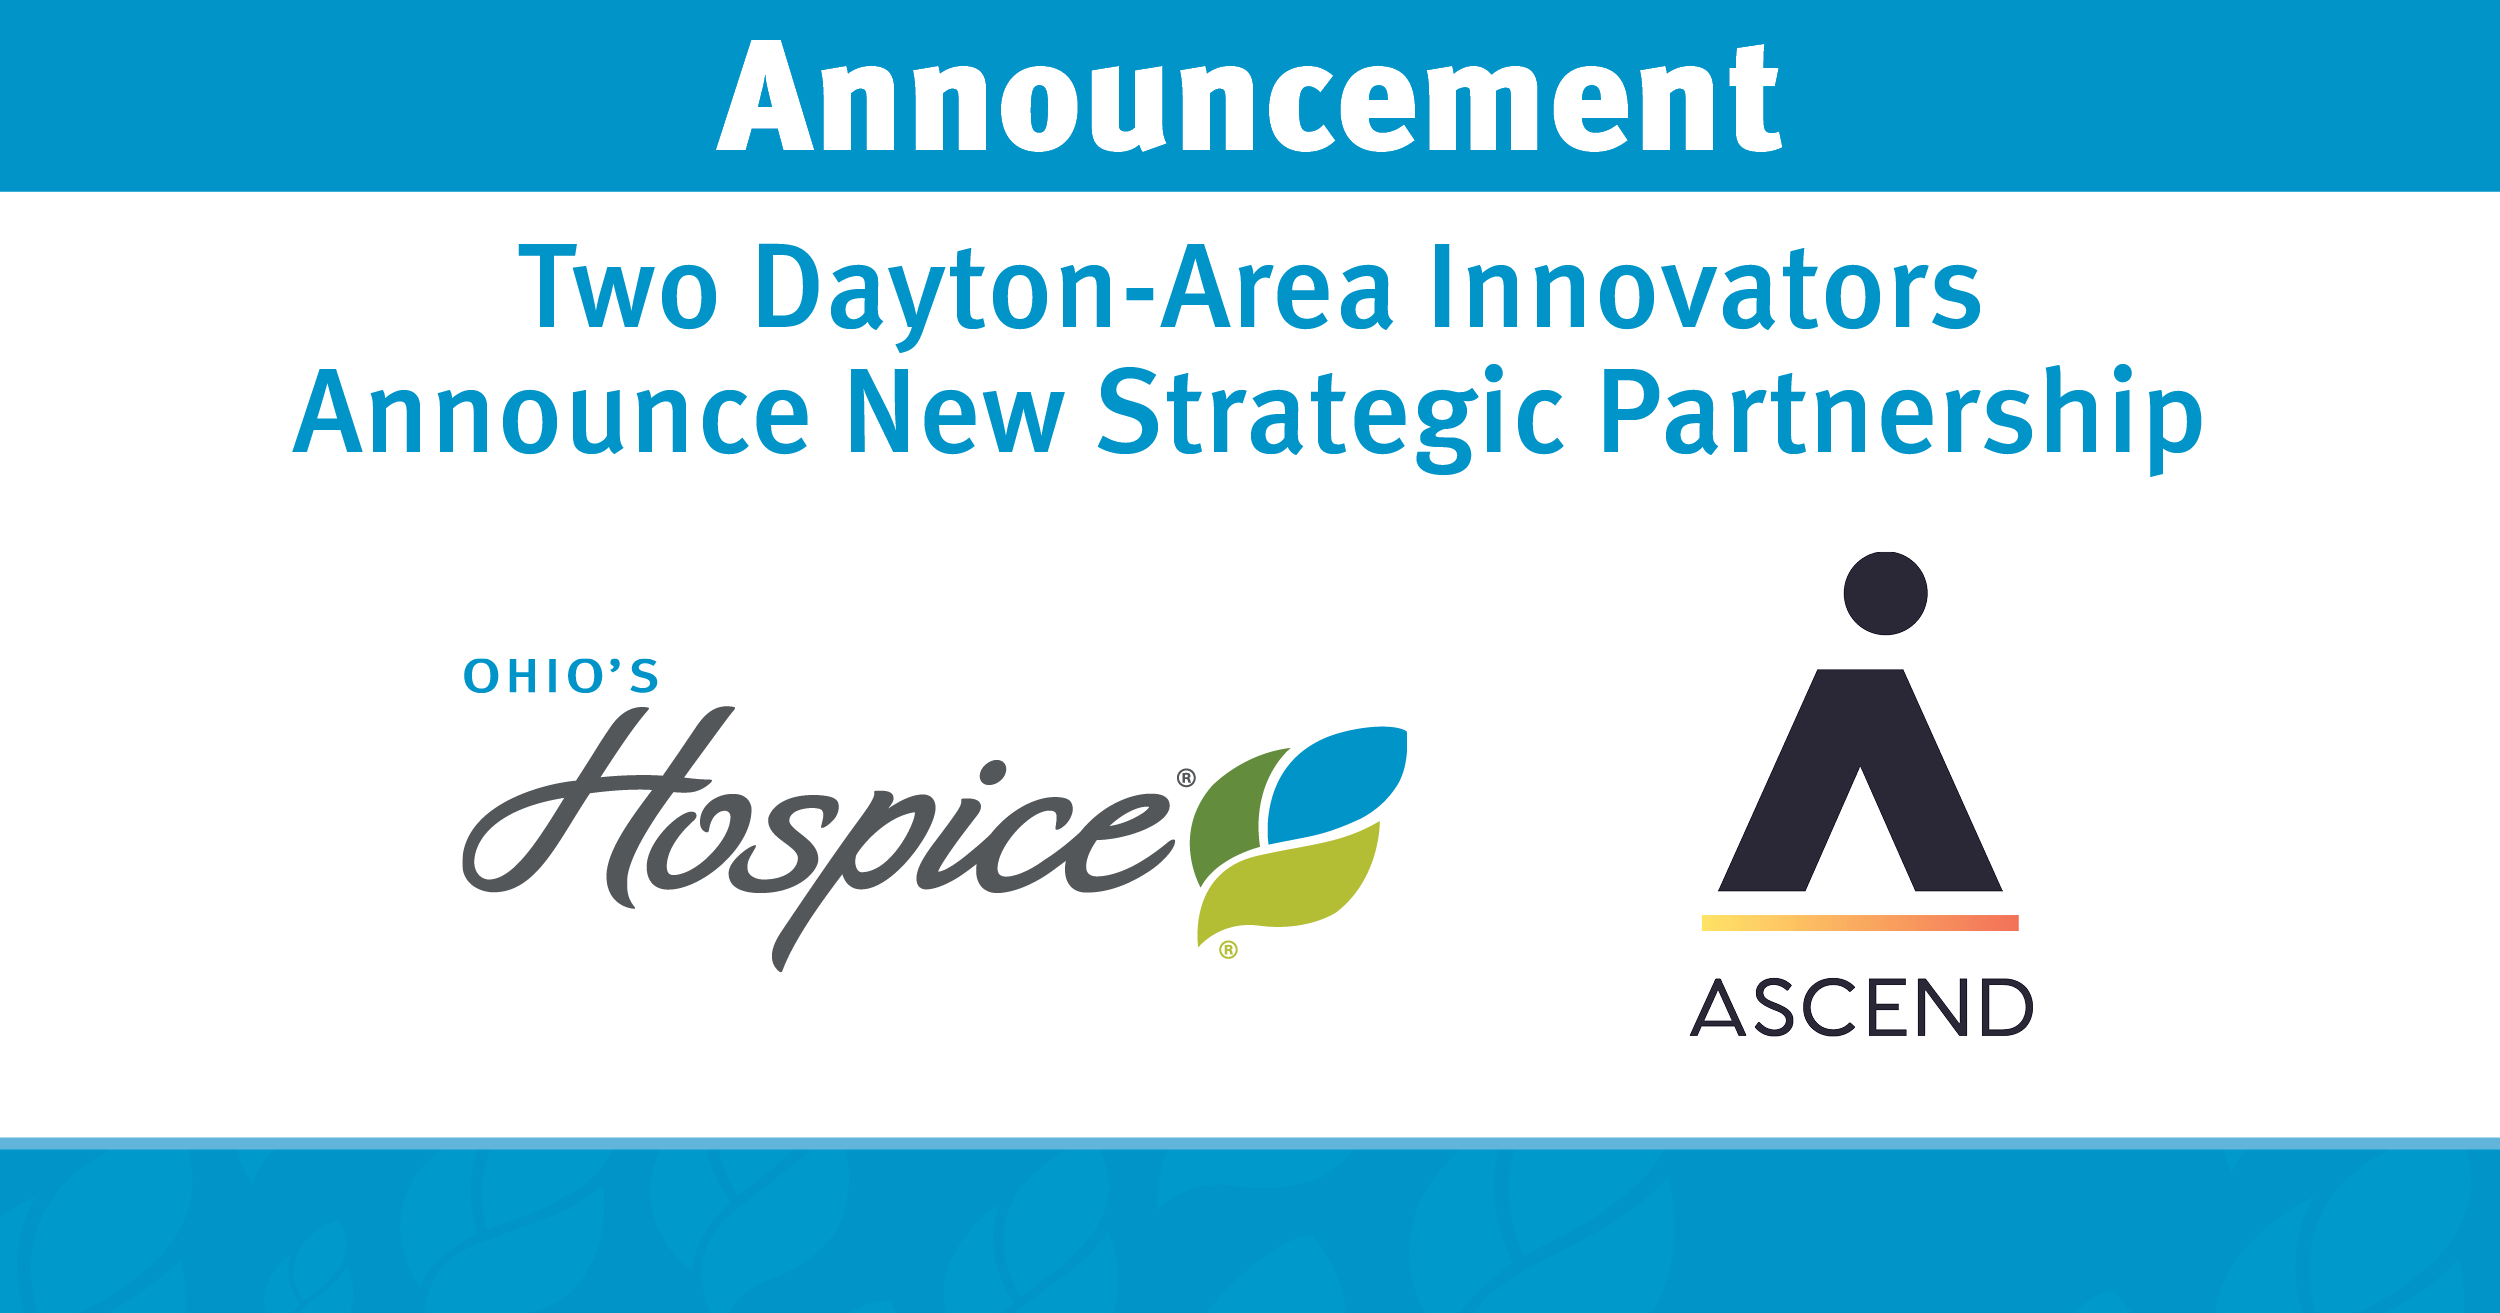 Announcement | Two Dayton-Area Innovators Announce New Strategic Partnership